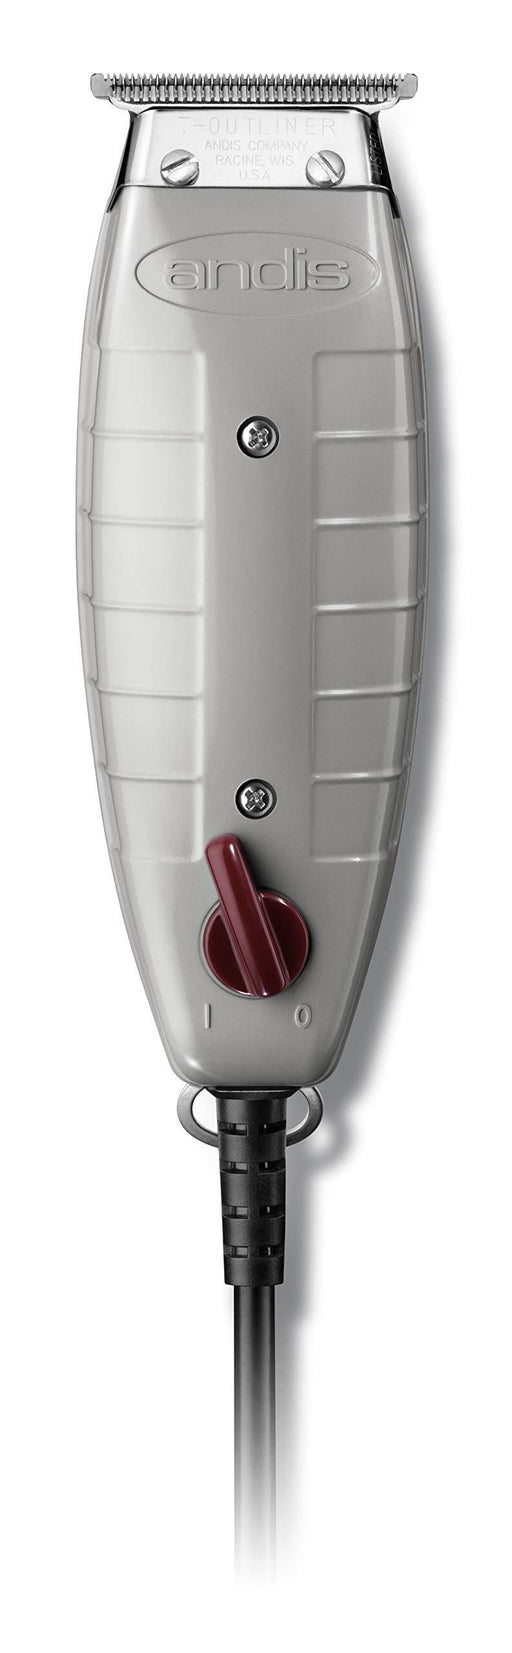 Andis - Trimmer - T-Outliner Magnetic Trimmer With T-blade - Beauty - Prohair